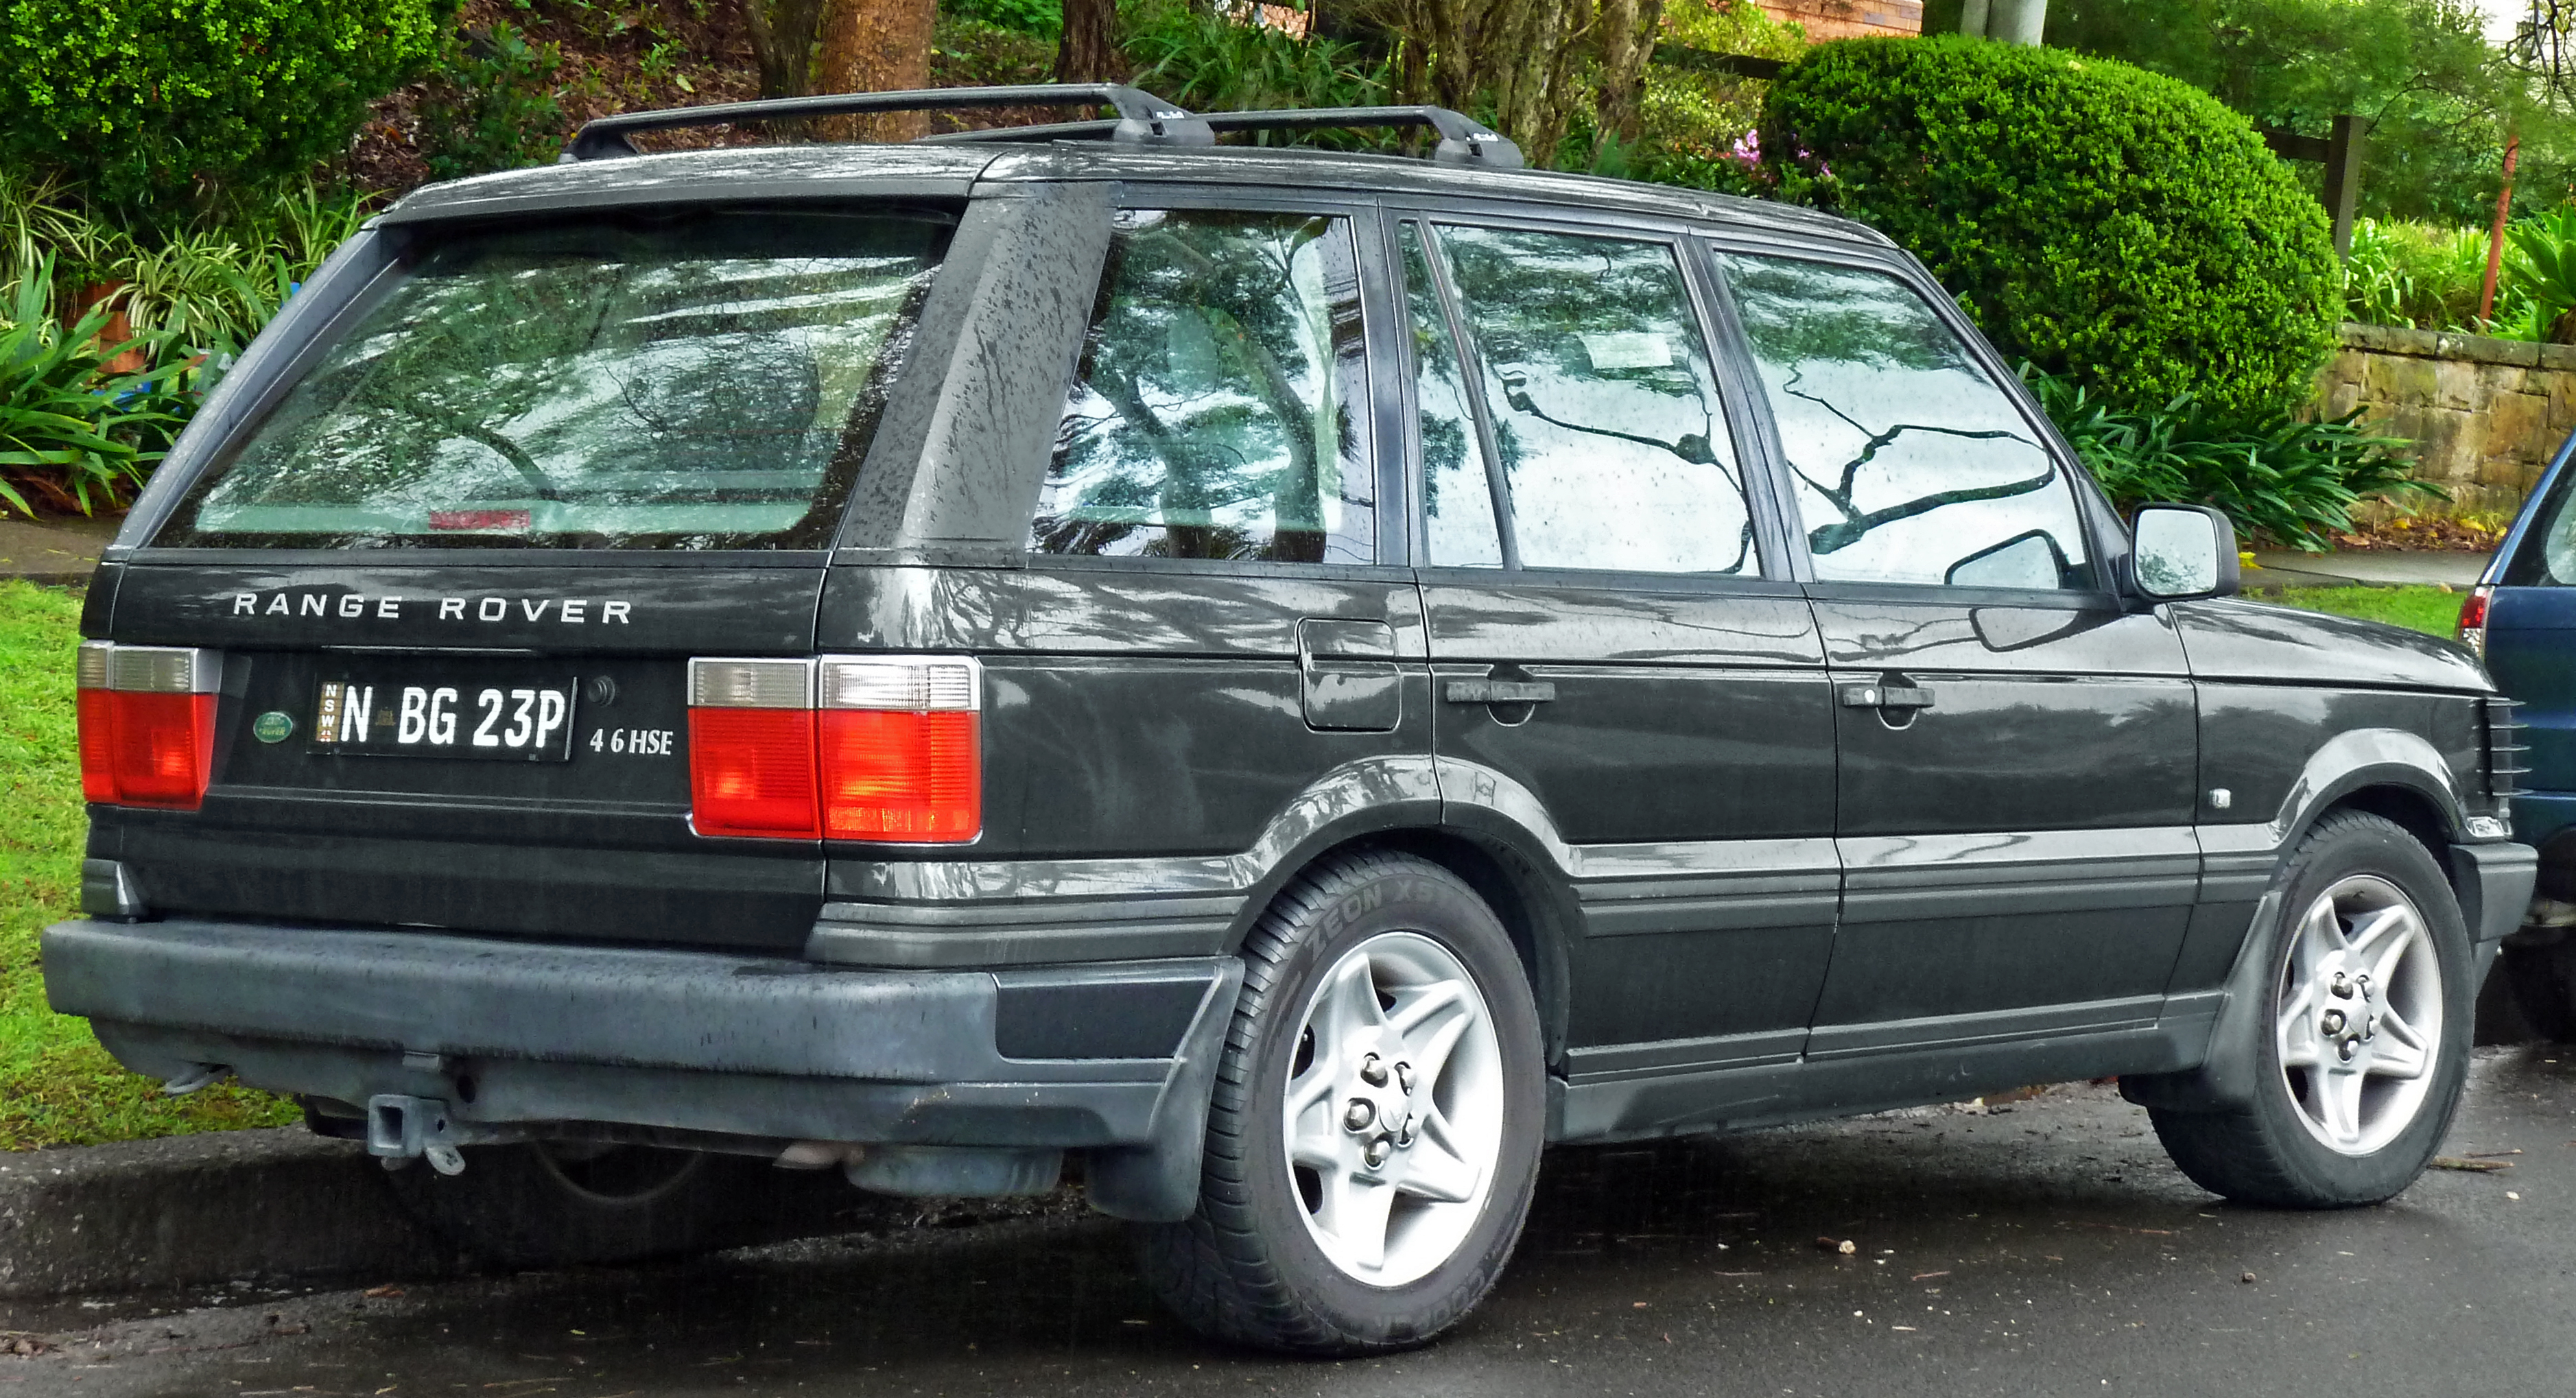 https://upload.wikimedia.org/wikipedia/commons/4/4c/1998_Land_Rover_Range_Rover_%28P38A%29_4.6_HSE_Autobiography_wagon_%282011-04-28%29.jpg